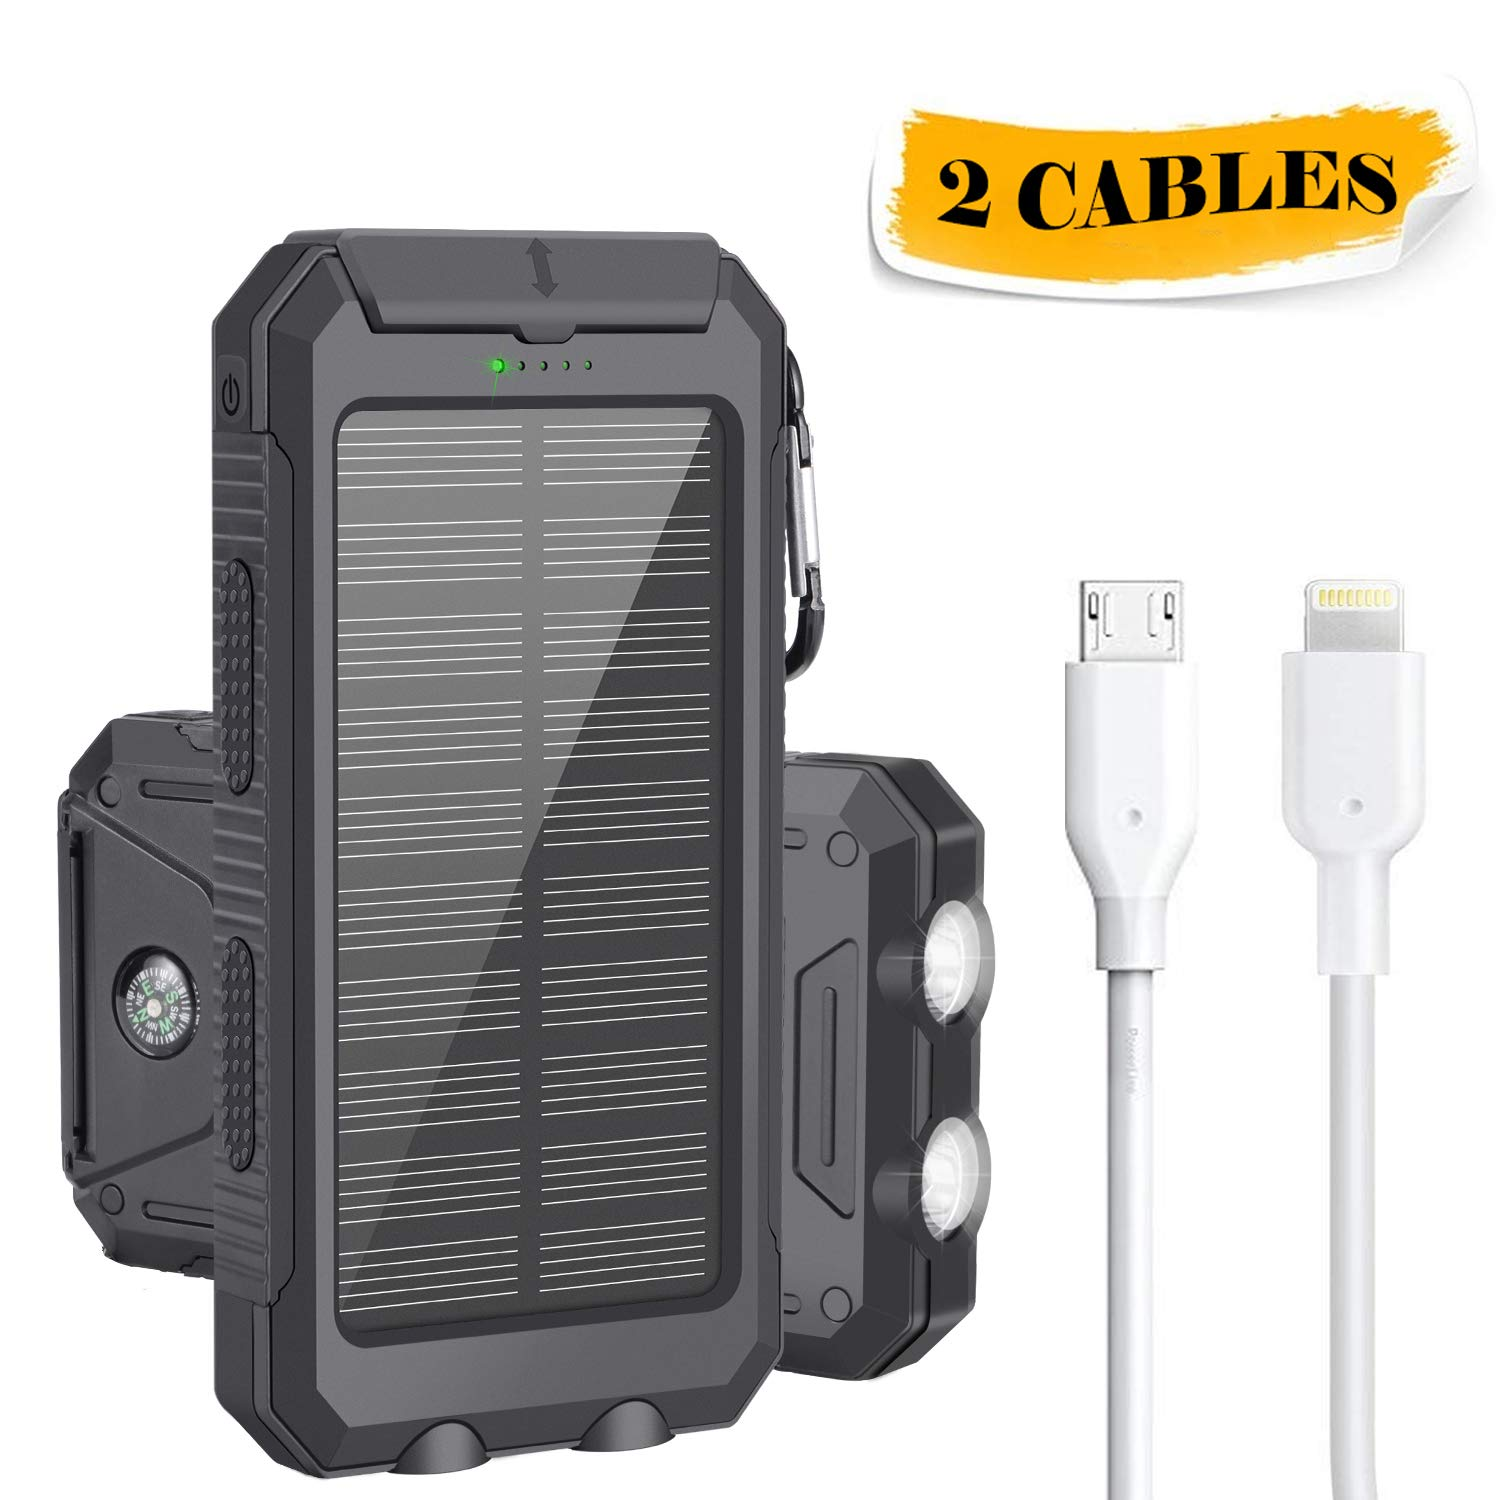 Solar Charger, LSXD Solar Power Bank 10000mAh Waterproof Portable Solar Charger, Dual USB External Backup Battery Pack with 2 Flashlights Carabiner and Compass for Travelling, Hiking, Emergency Use M-deal CIW06